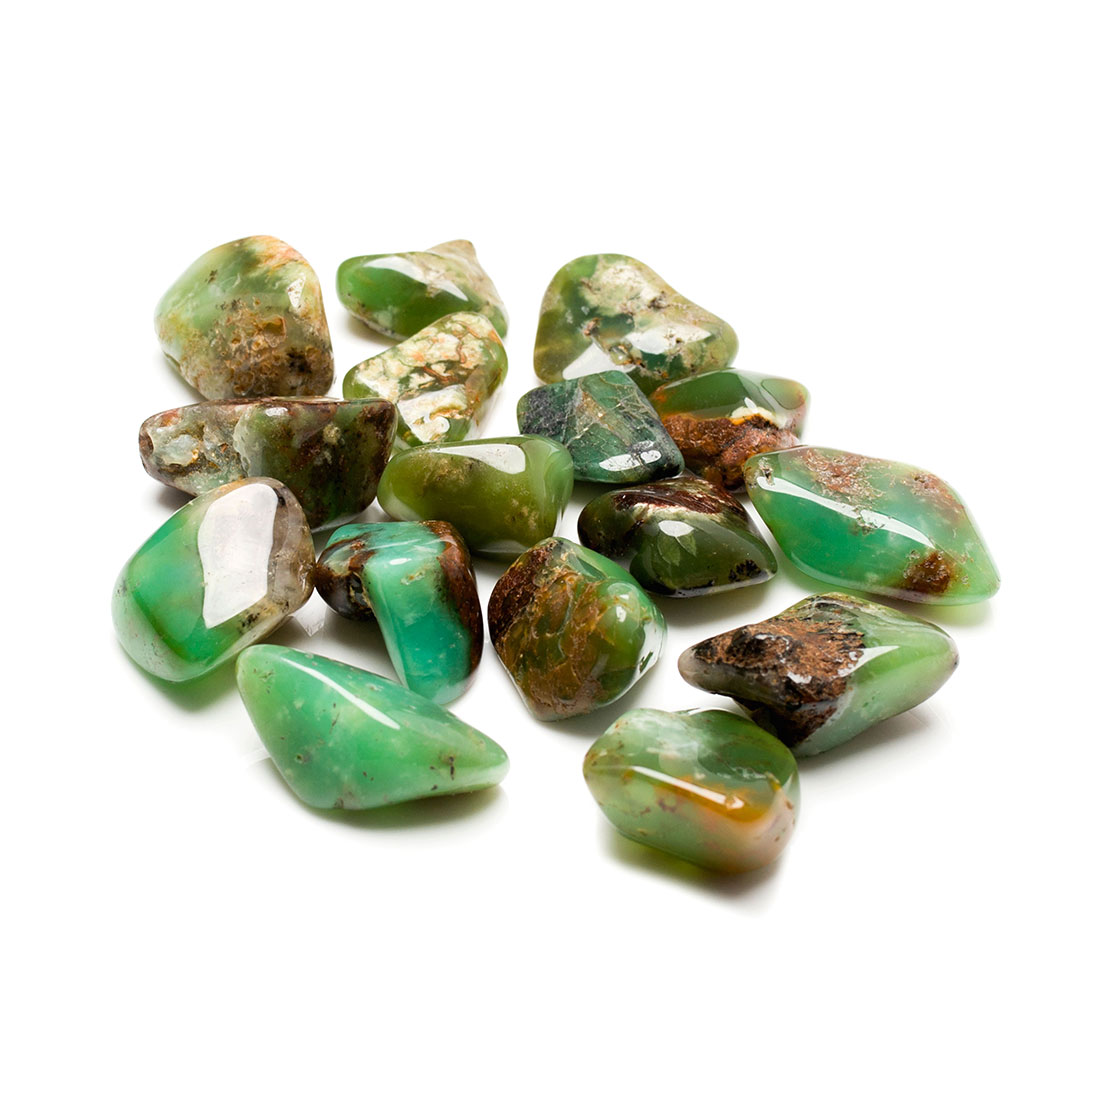 emerald green coloured chrysoprase tumbled stones